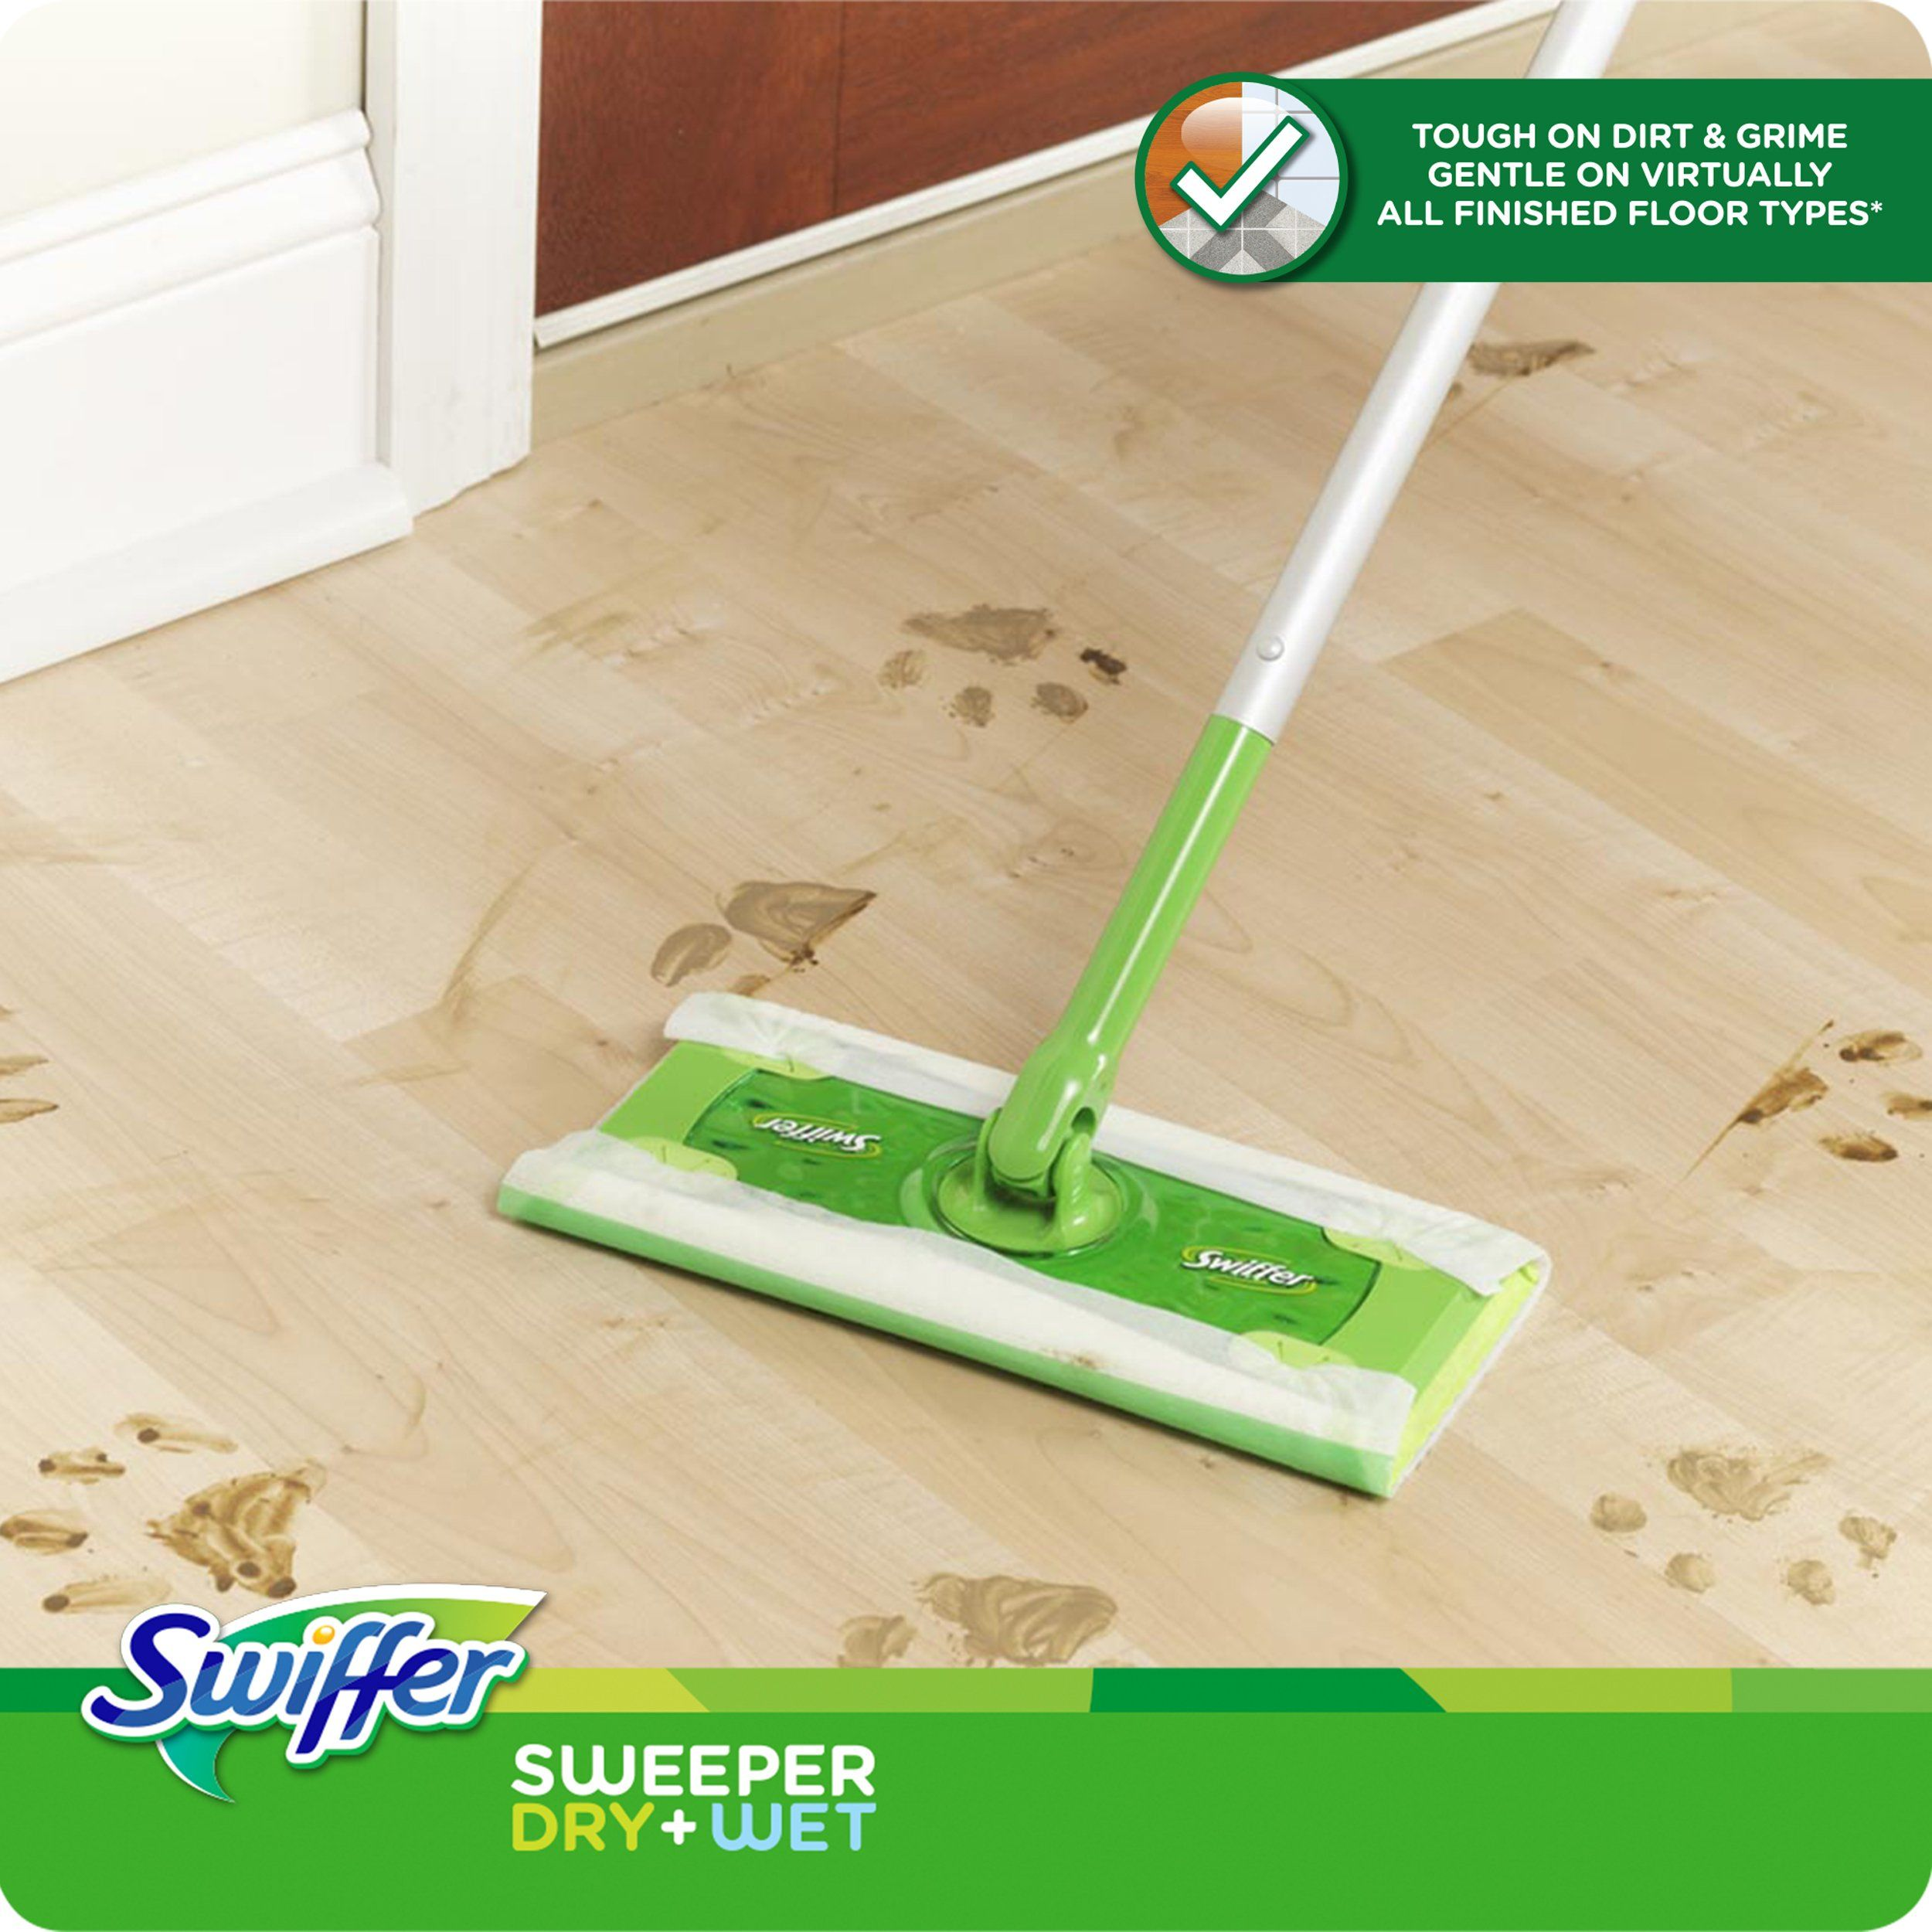 Reviewing The Swiffer Sweeper Floor Mop Clean Hardwood Floors